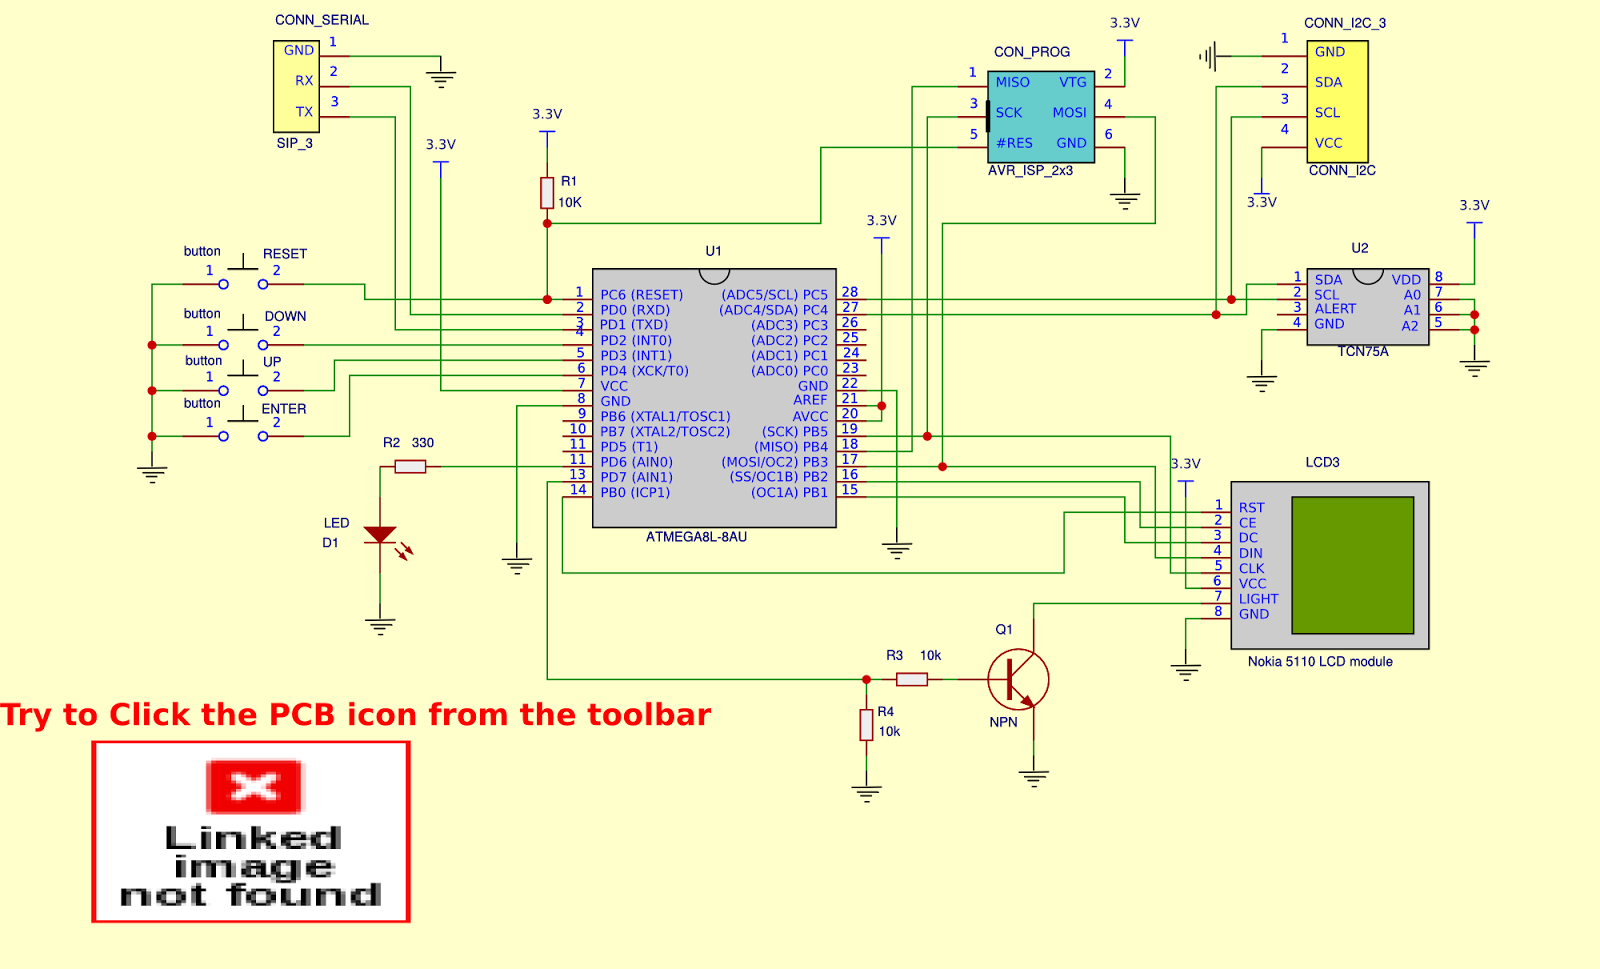 Circuit Simulator Simulador De Circuitos Introduo Youtube Graphical Thermometer Using Atmega8 Tcn75a And 84x48 Lcd From Nokia One User Of Easyeda Created This Project Some Days Ago You Can Try To Convert